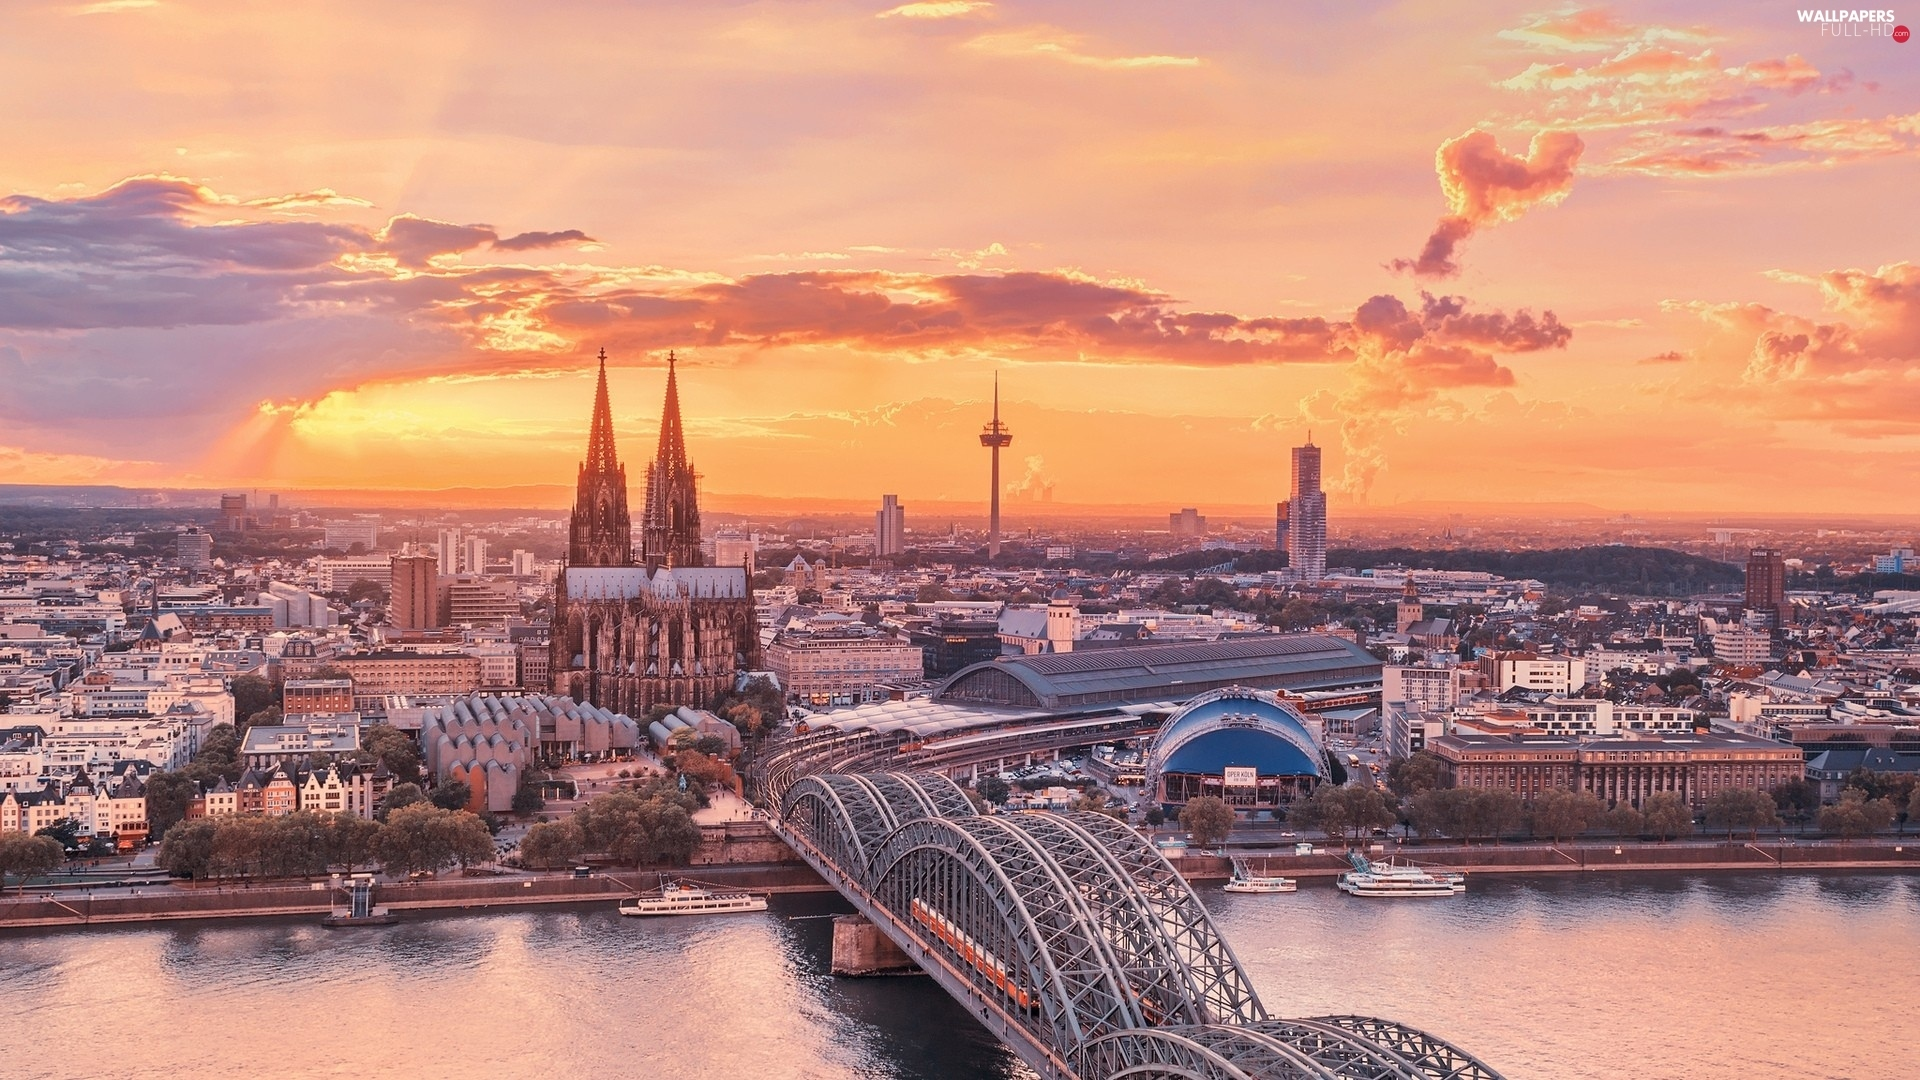 bridge, chair, Gothic, Germany, Hohenzollern, Cologne